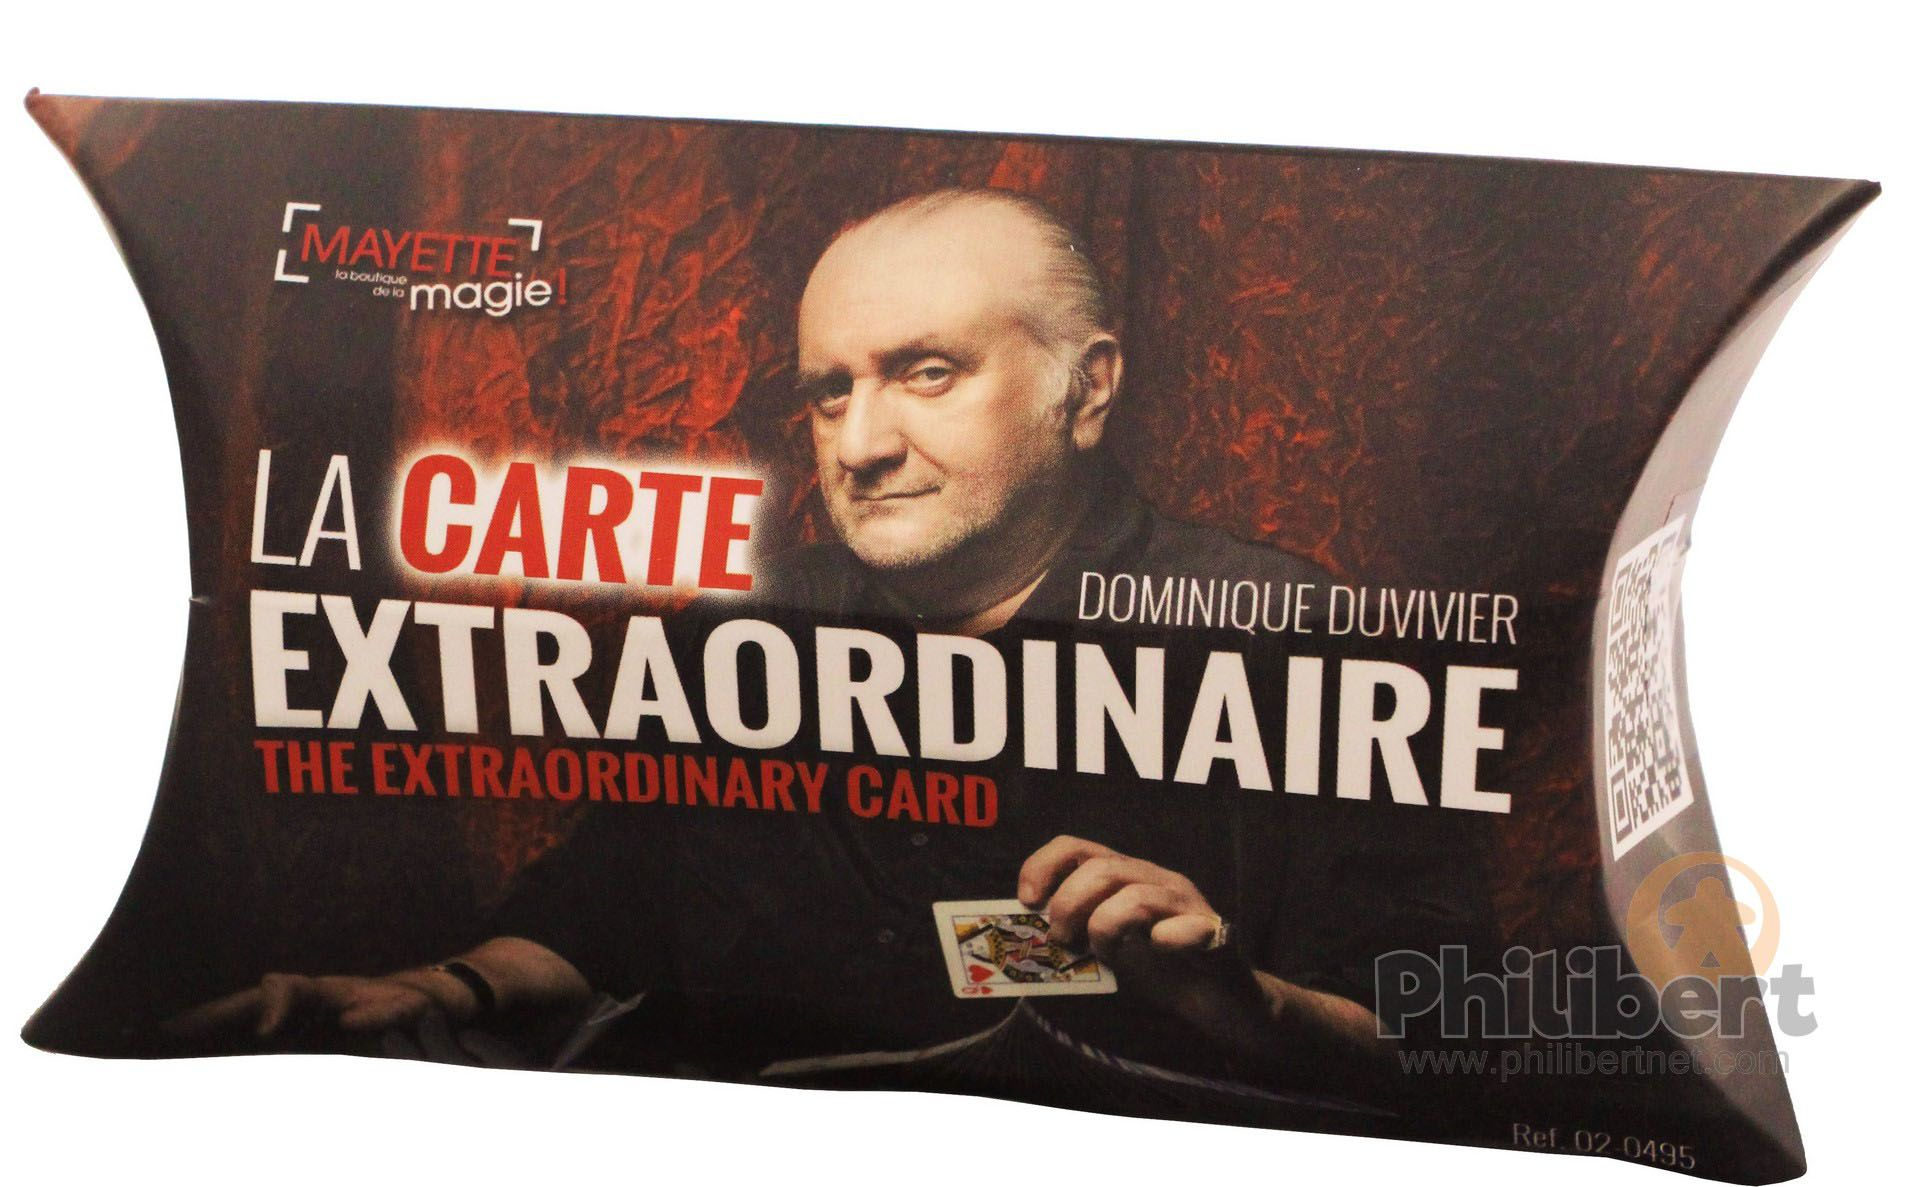 The extraordinary card by Dominique Duvivier